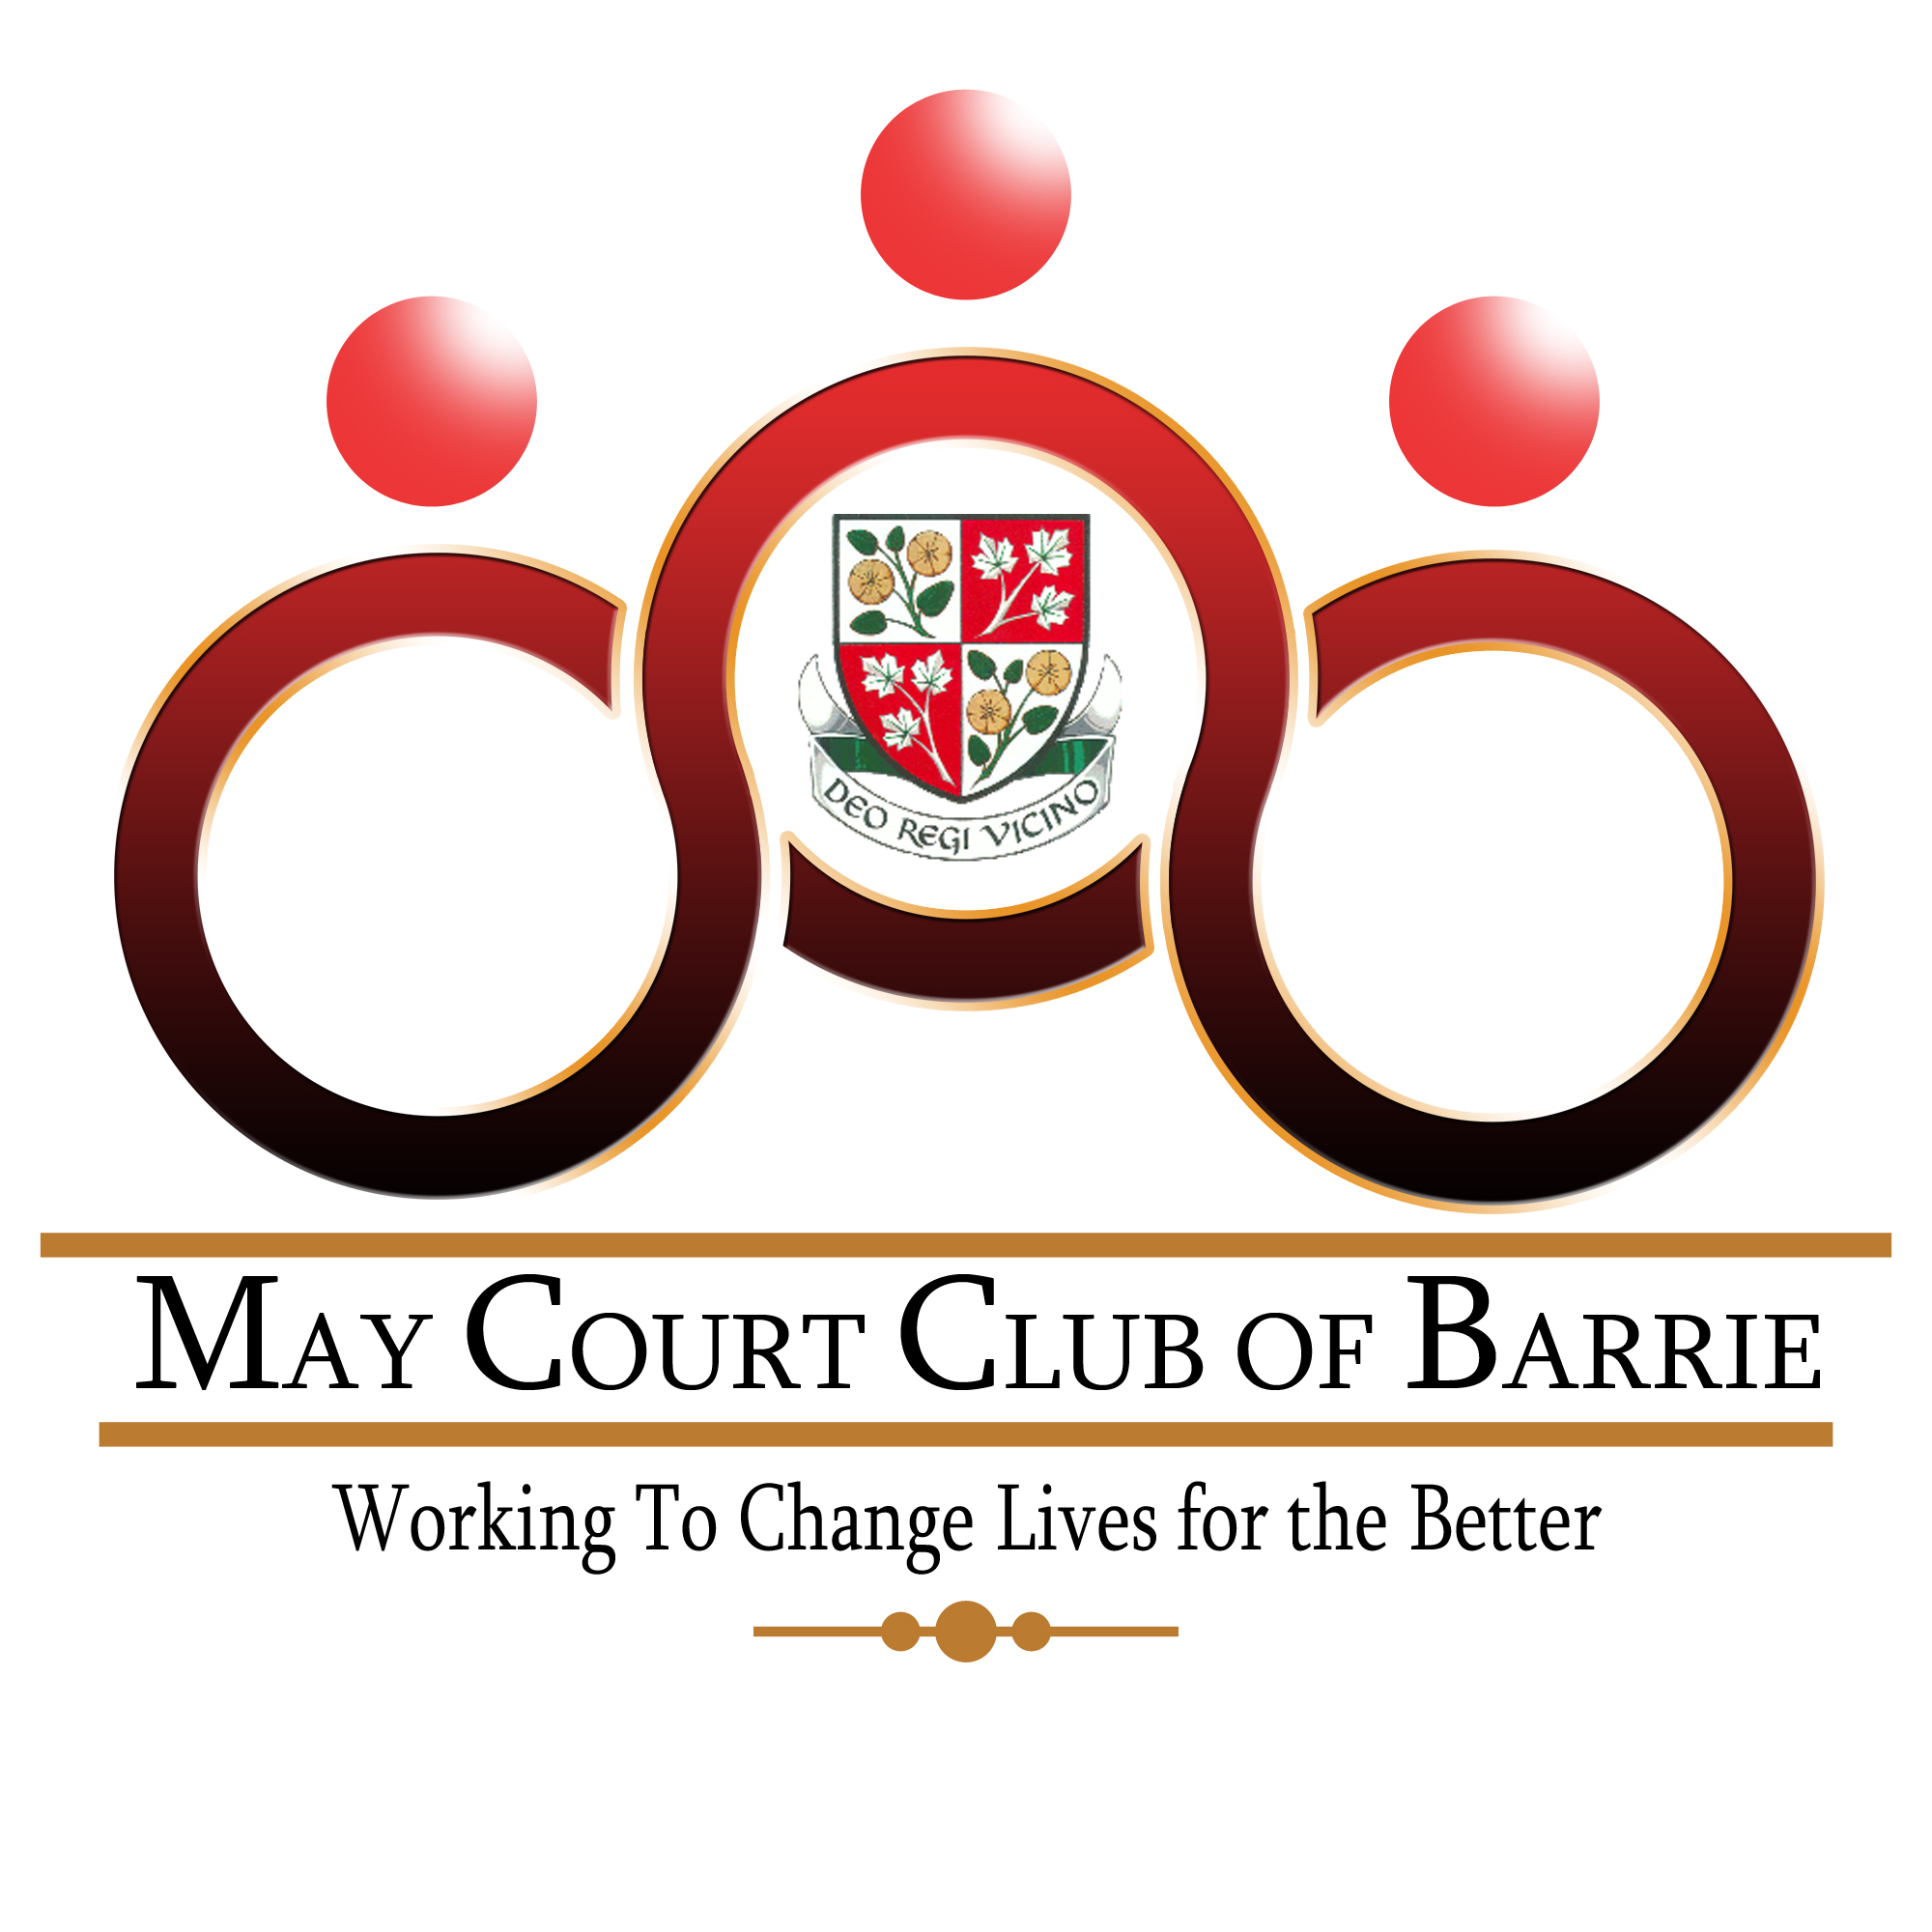 Logo Design by Ervin Beñez - Entry No. 43 in the Logo Design Contest New Logo Design for MAY COURT CLUB OF BARRIE.